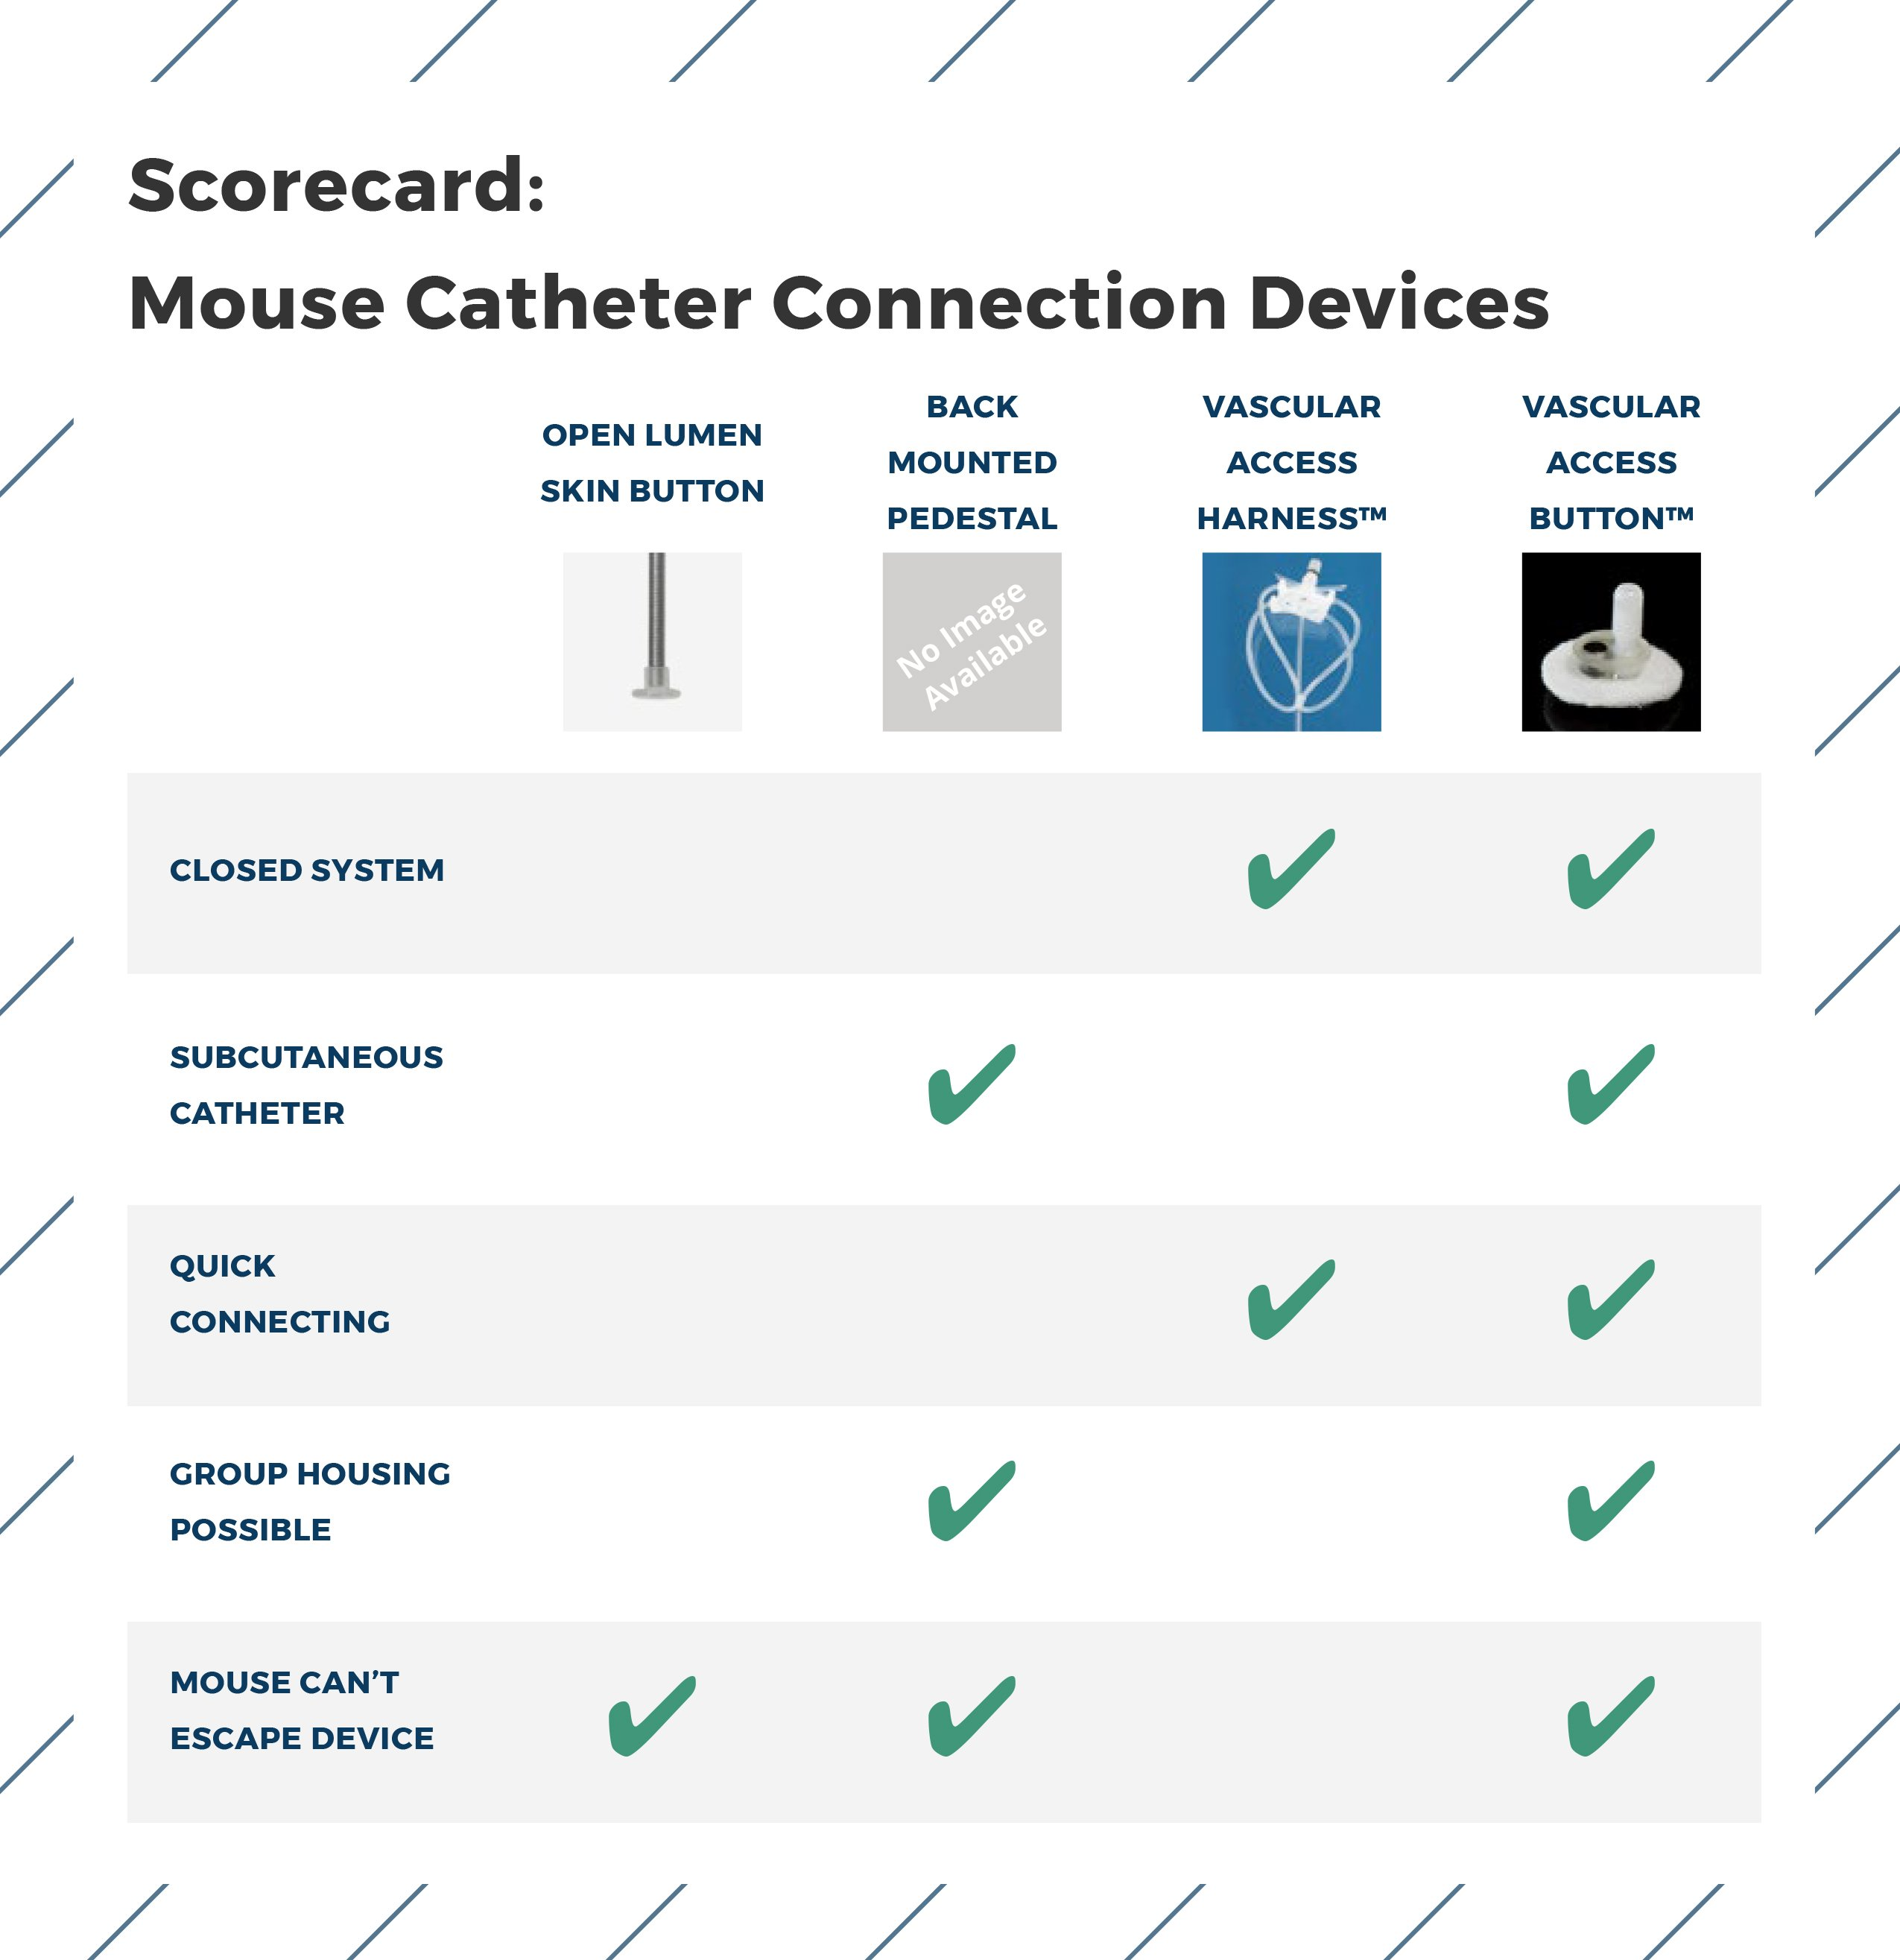 Mouse Catheter Scorecard